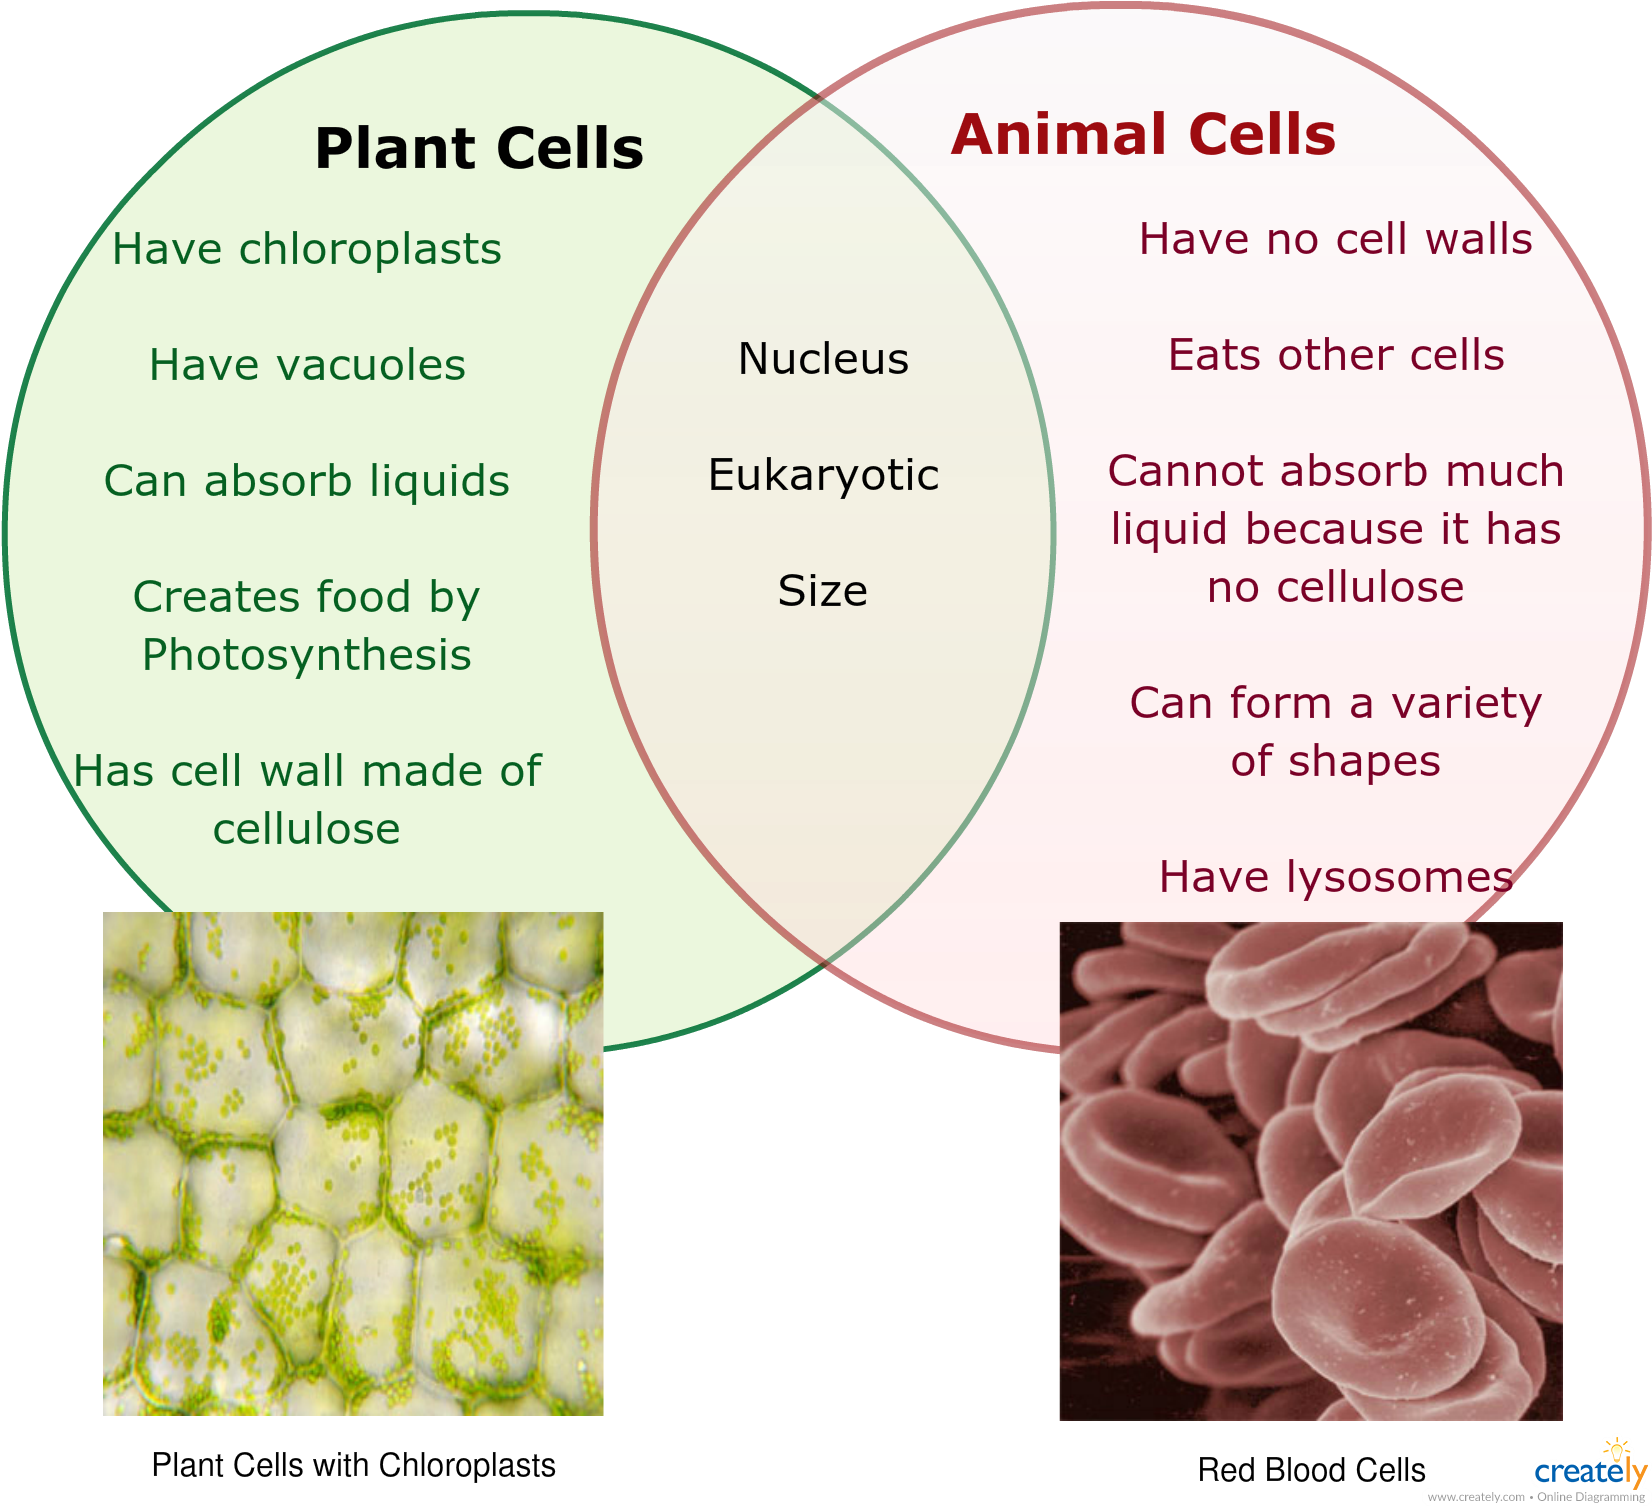 Download Hd Plant Vs Animal Cells Venn Diagram Labeled Diagram Of